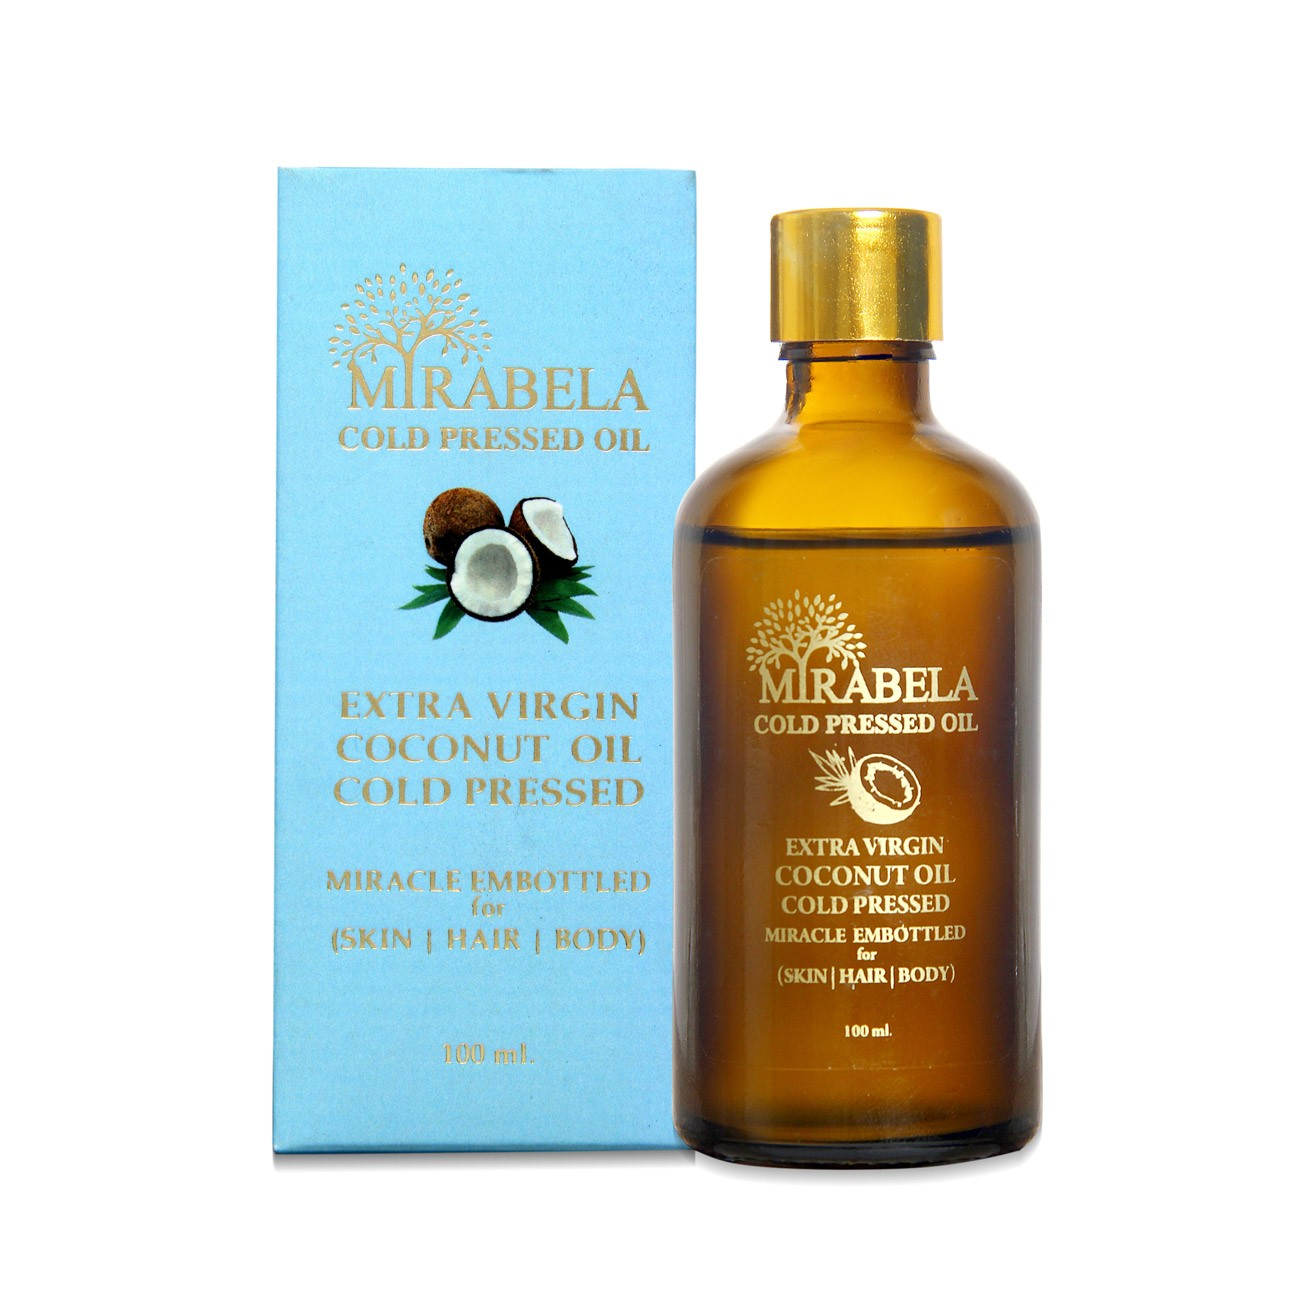 Virgin Coconut Oil - Cold Pressed Oil 100 ml